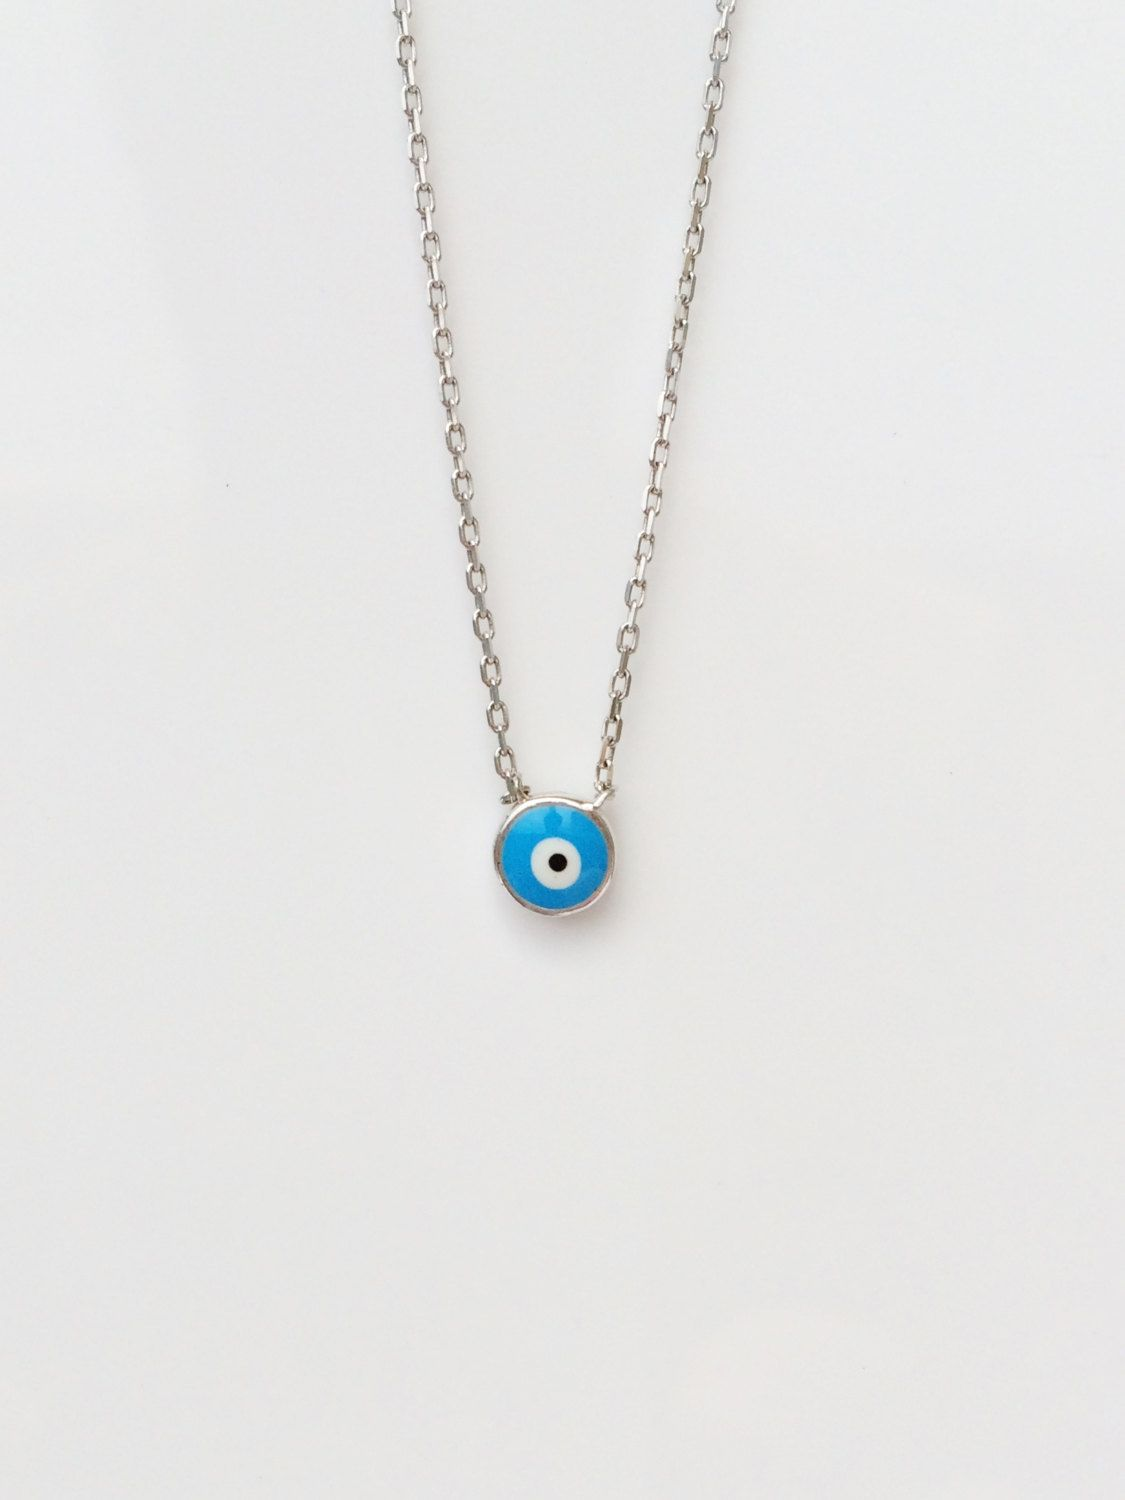 Tiny evil eye necklace in real 925 sterling silver safe to wet eye sale eye necklace evil eye necklace protection jewelry tiny necklace layering necklace eye jewelry silver evil eye by luckycharmsusa on etsy aloadofball Image collections